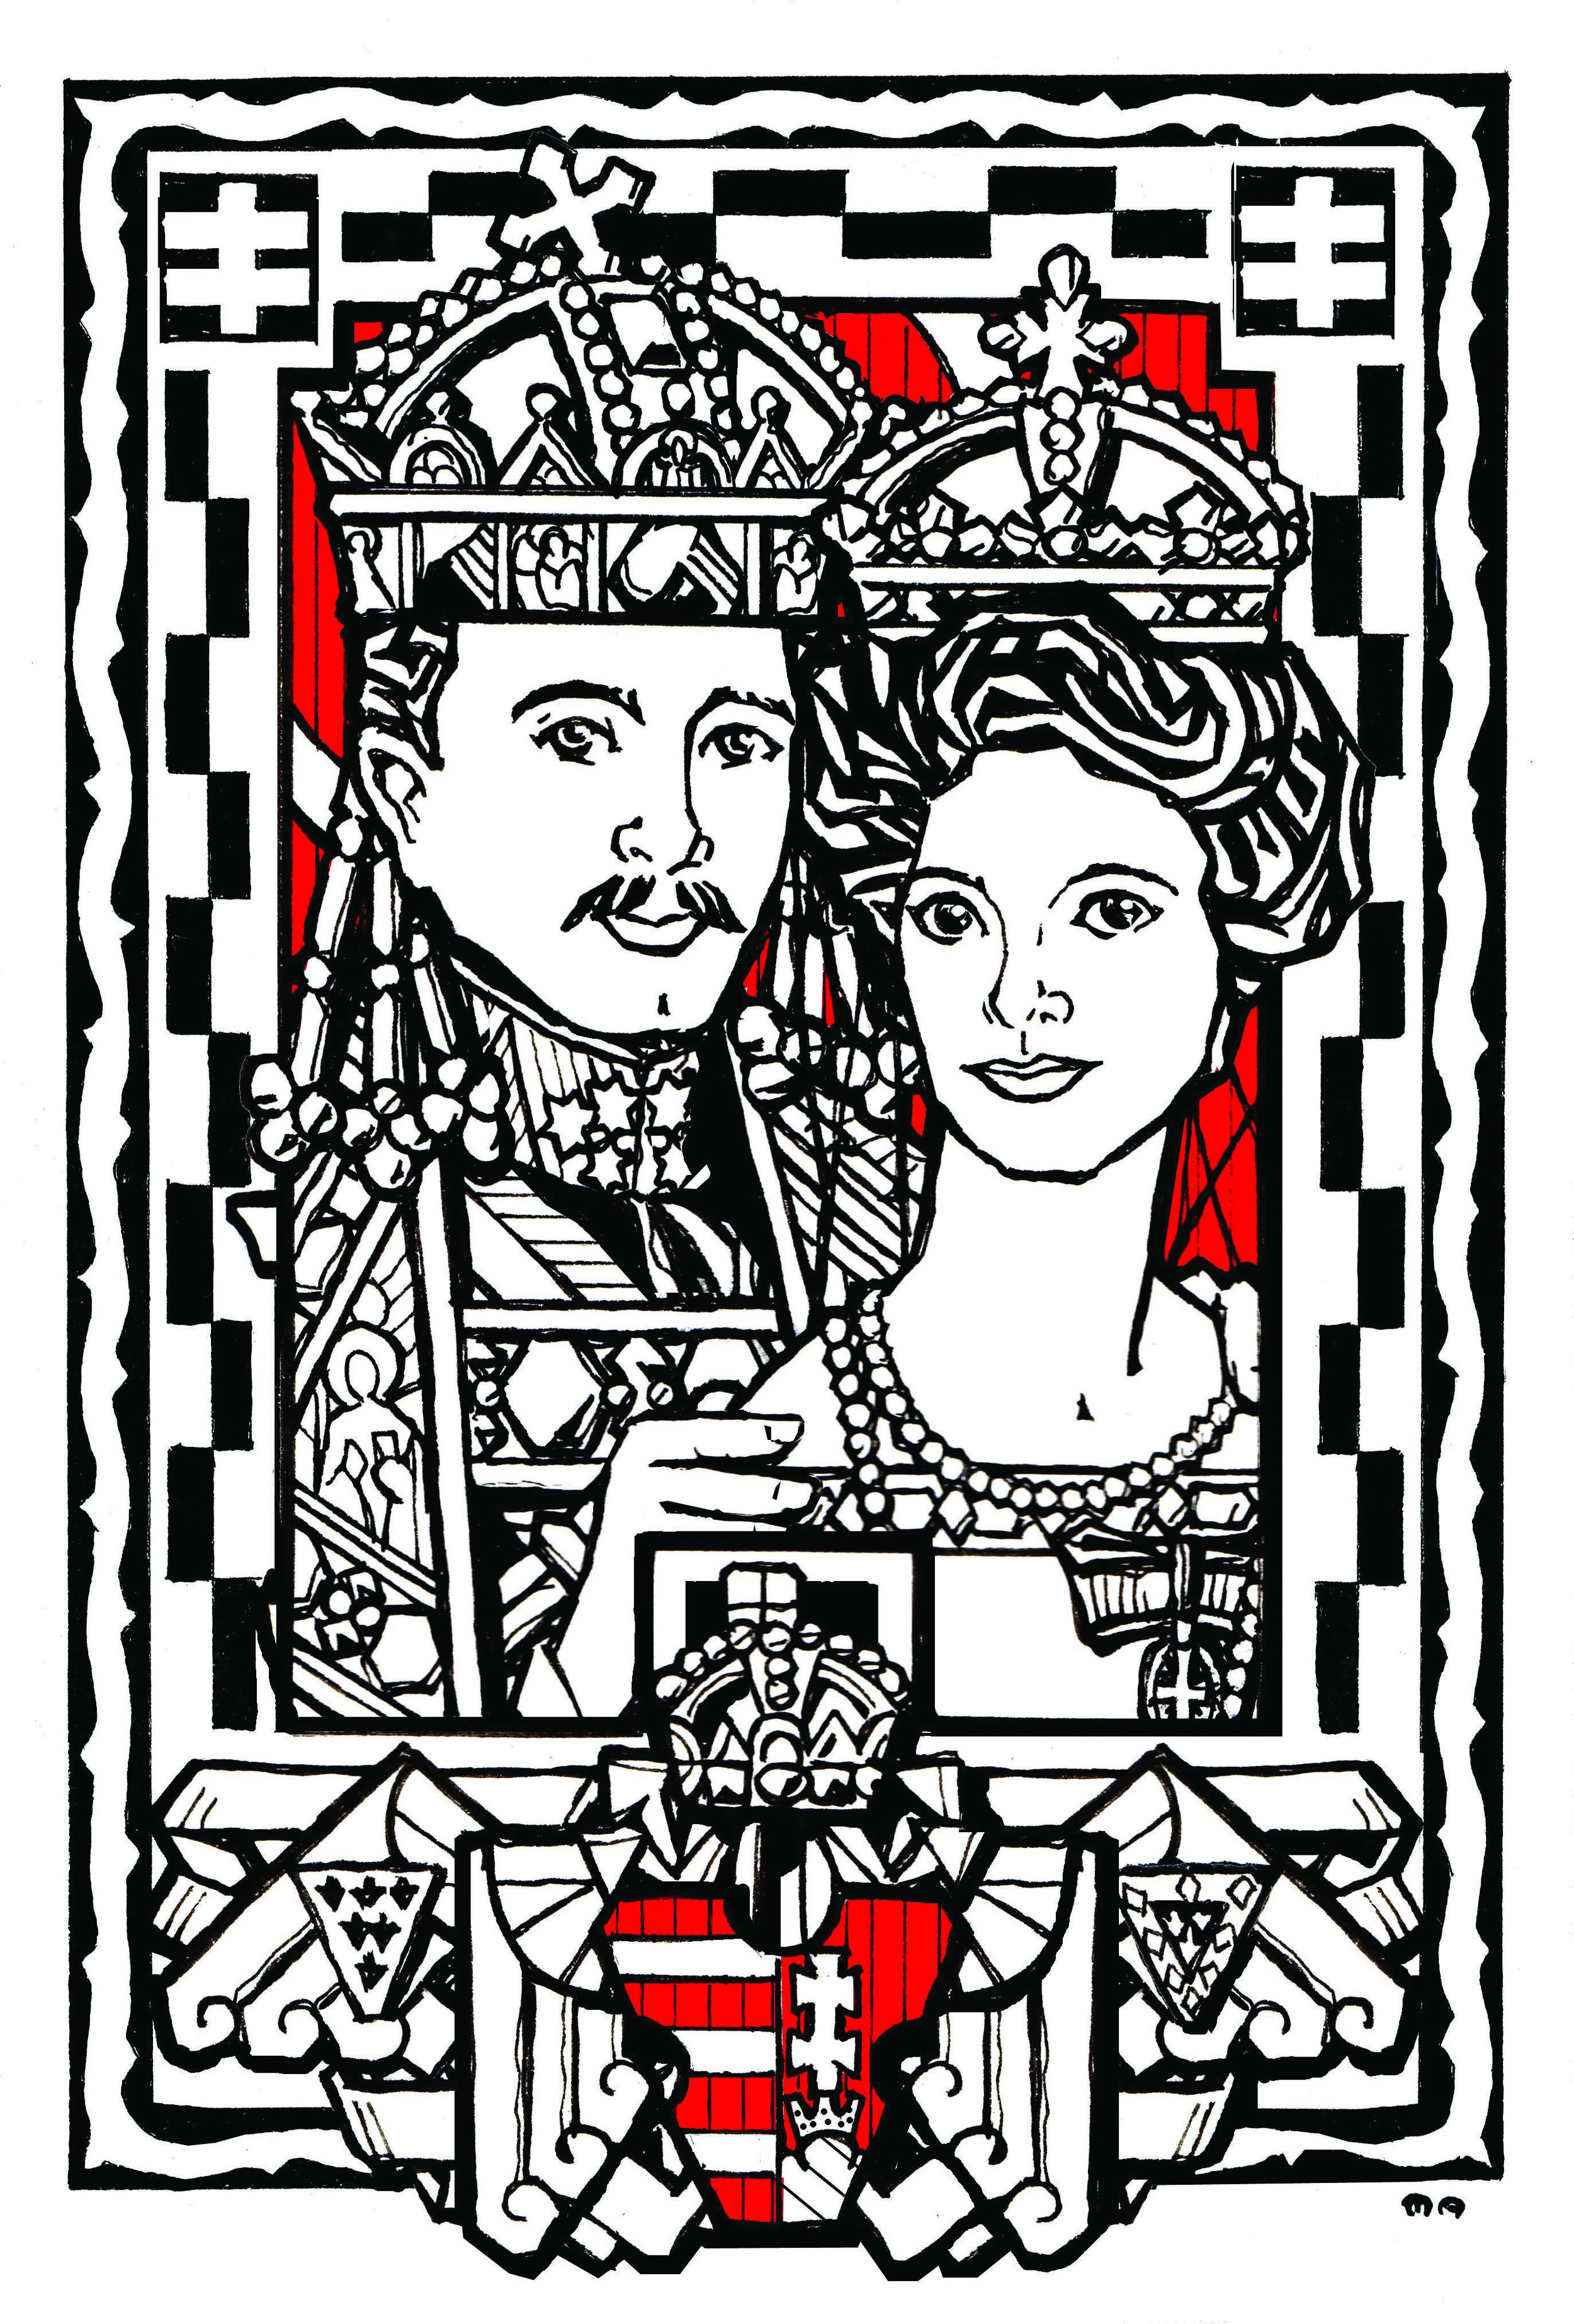 Apostolic King and Queen of Hungary